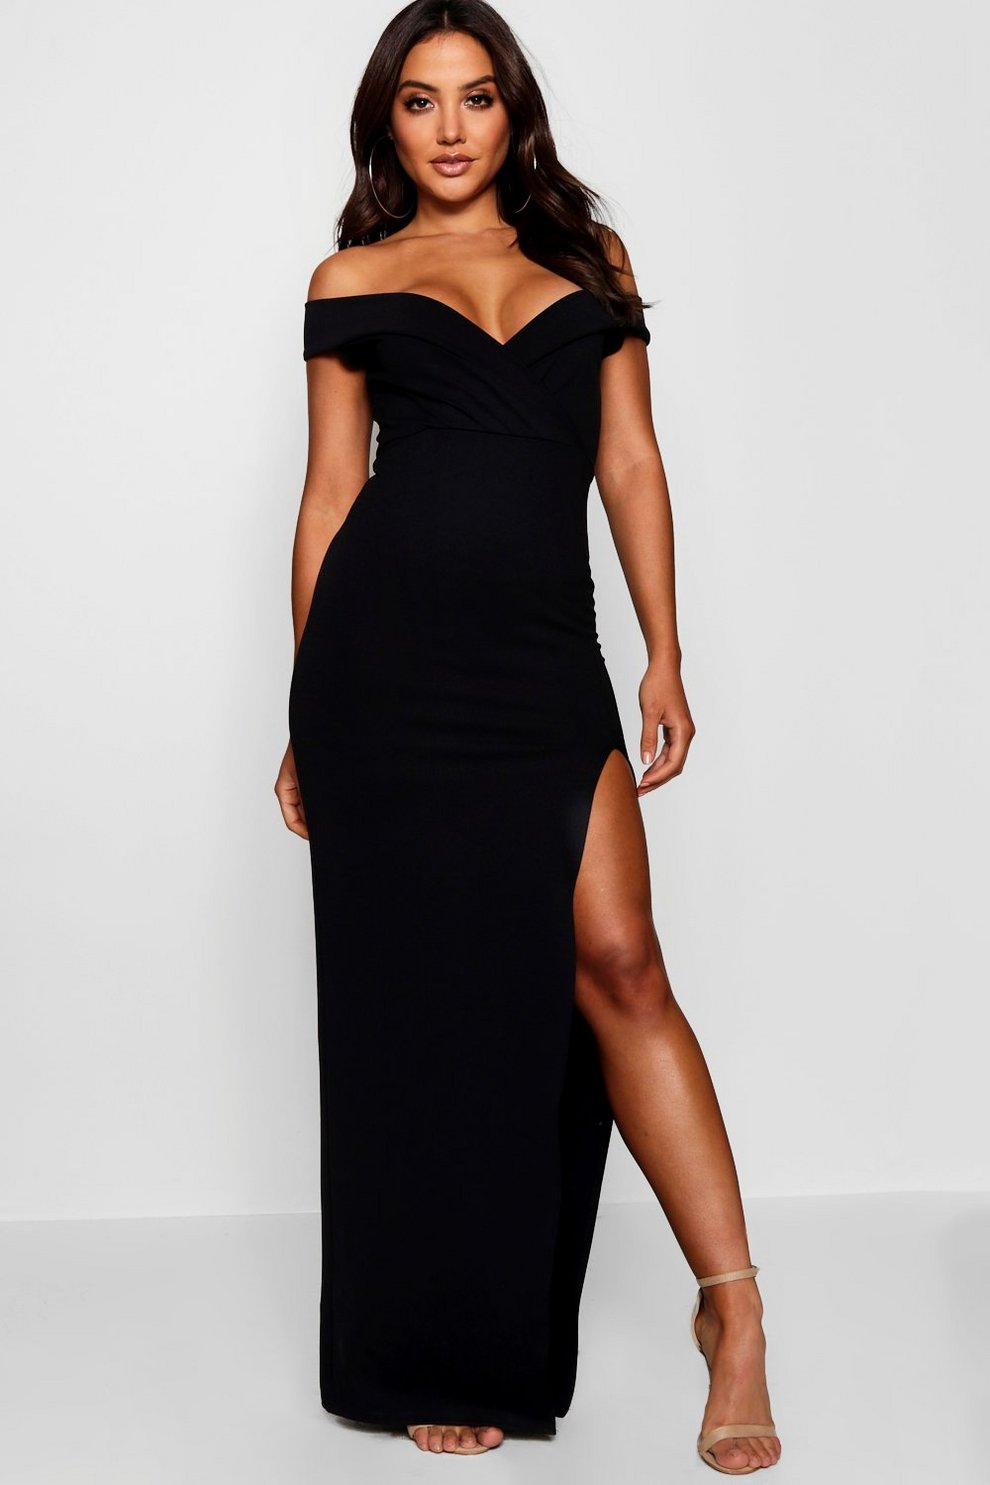 bb218953752 Womens Black Wrap Top Off Shoulder Maxi Dress. Hover to zoom